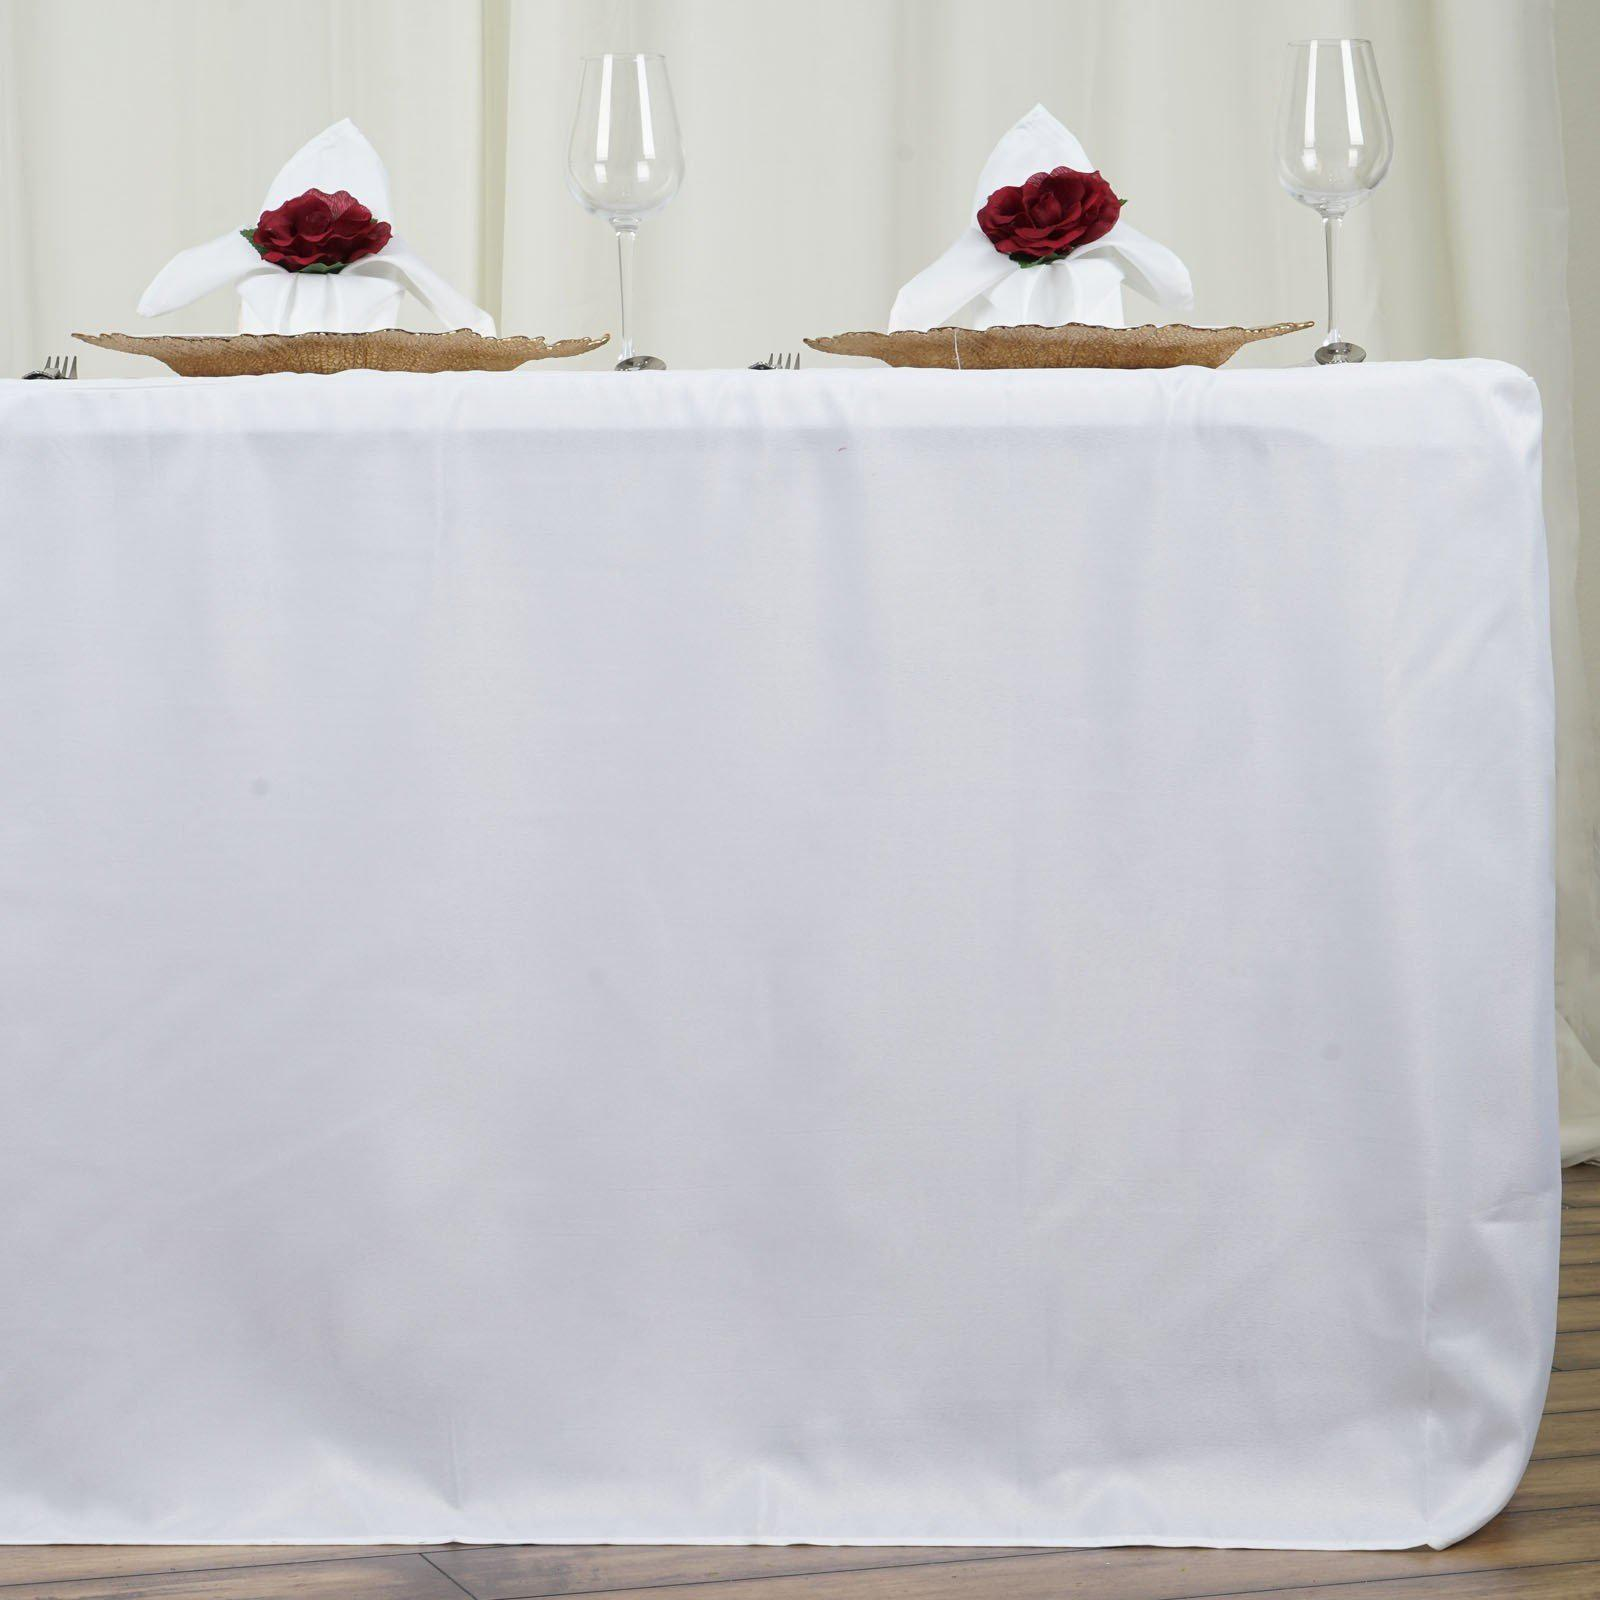 ... 6FT Fitted WHITE Wholesale Polyester Table Cover Wedding Banquet Event Tablecloth ... & 6FT White Fitted Polyester Rectangular Table Cover ...